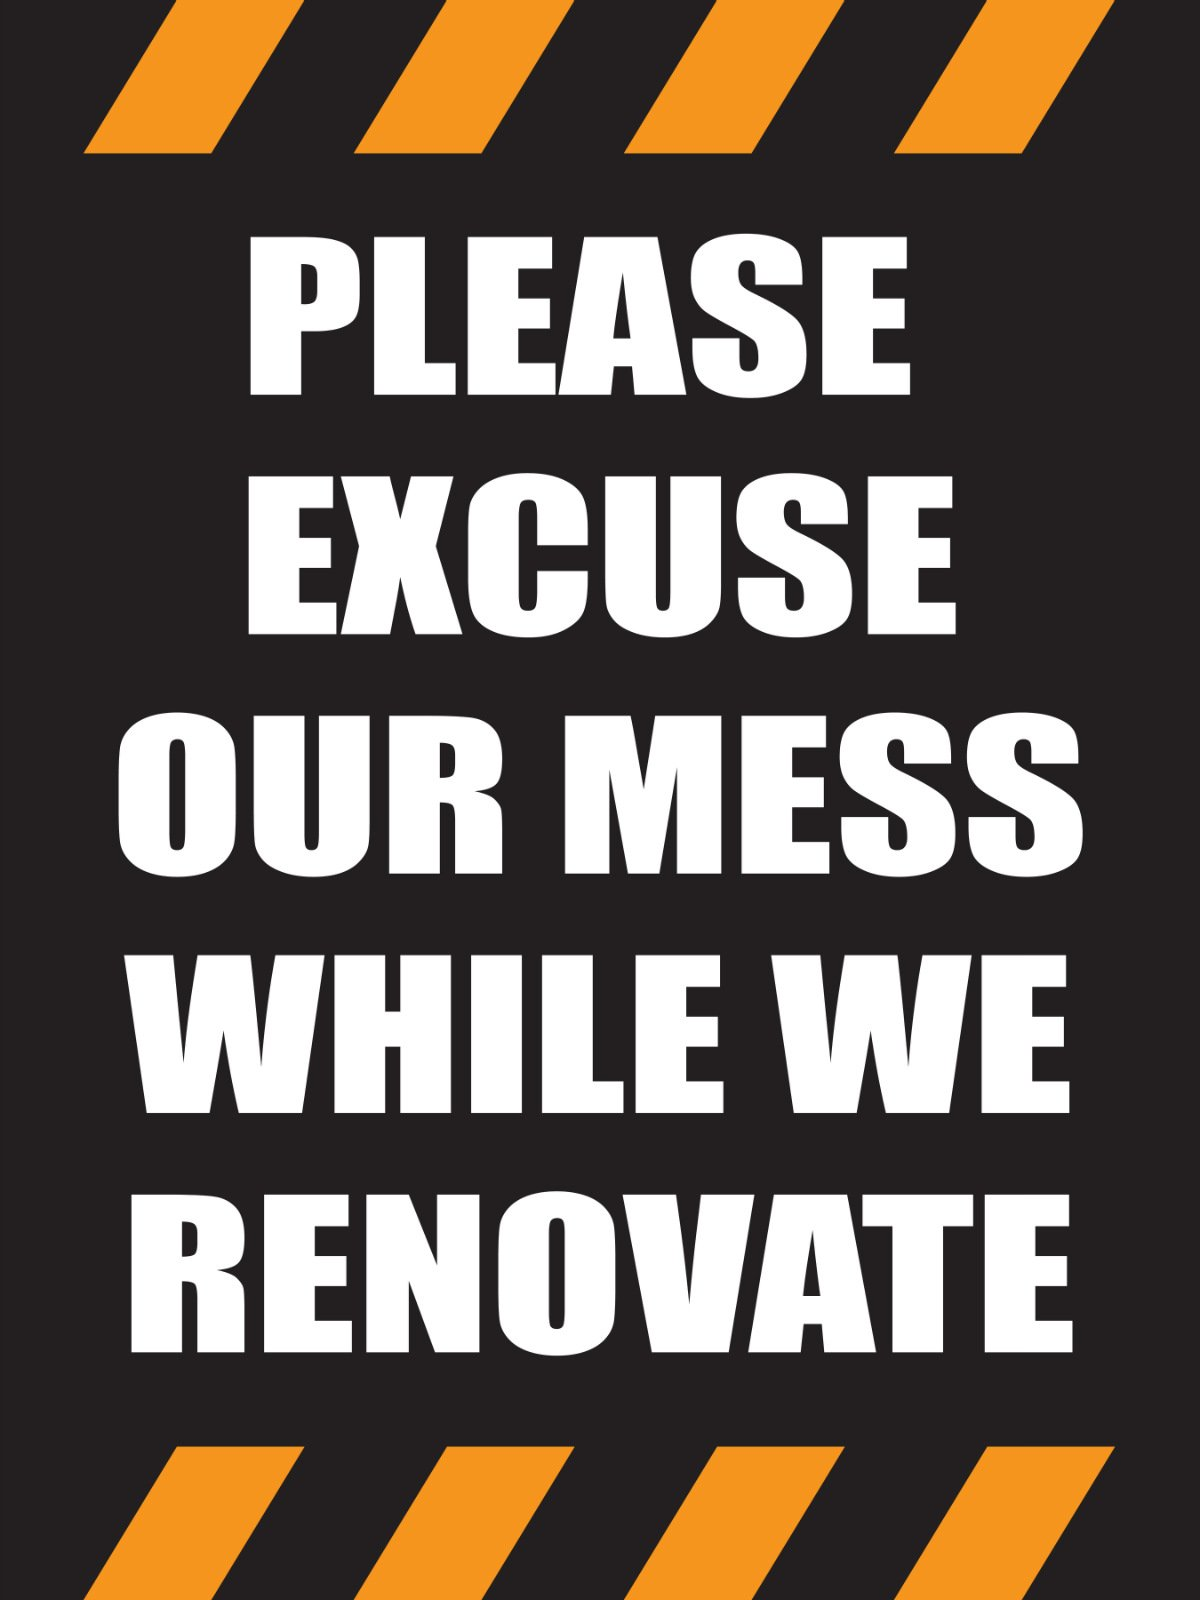 Adaptable image intended for please excuse our mess printable sign